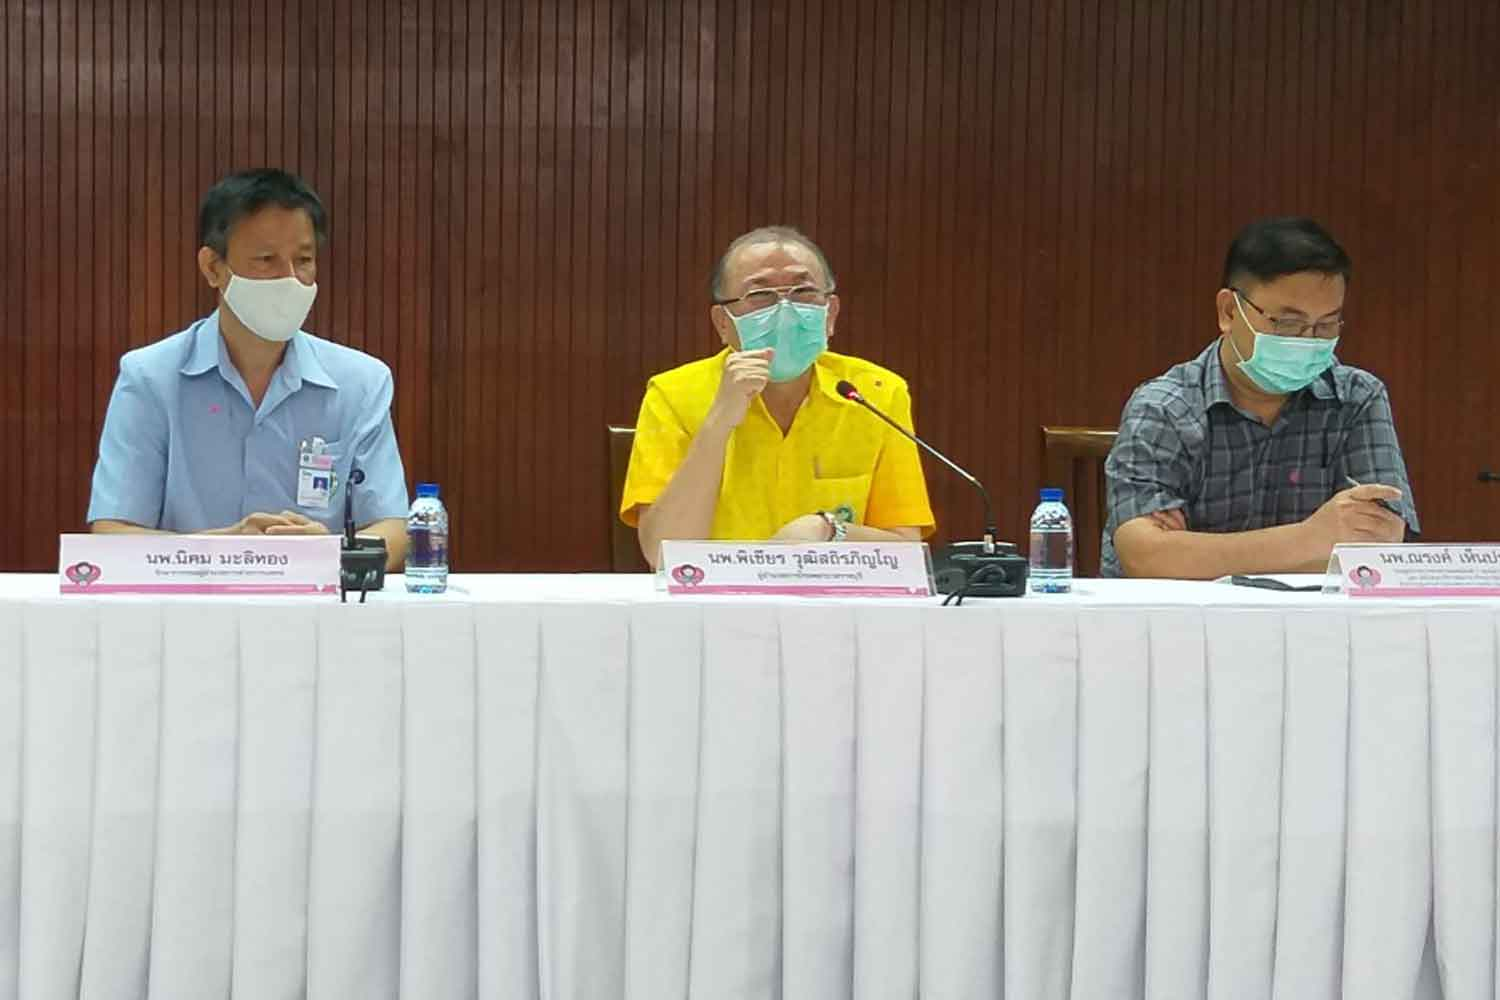 Dr Pichian Wuthisathirapinyo, (centre) director of Ratchaburi Hospital, holds a press conference at his hospital in Muang district, Ratchaburi province, on Tuesday. (Photo: Saichol Ochkajon)